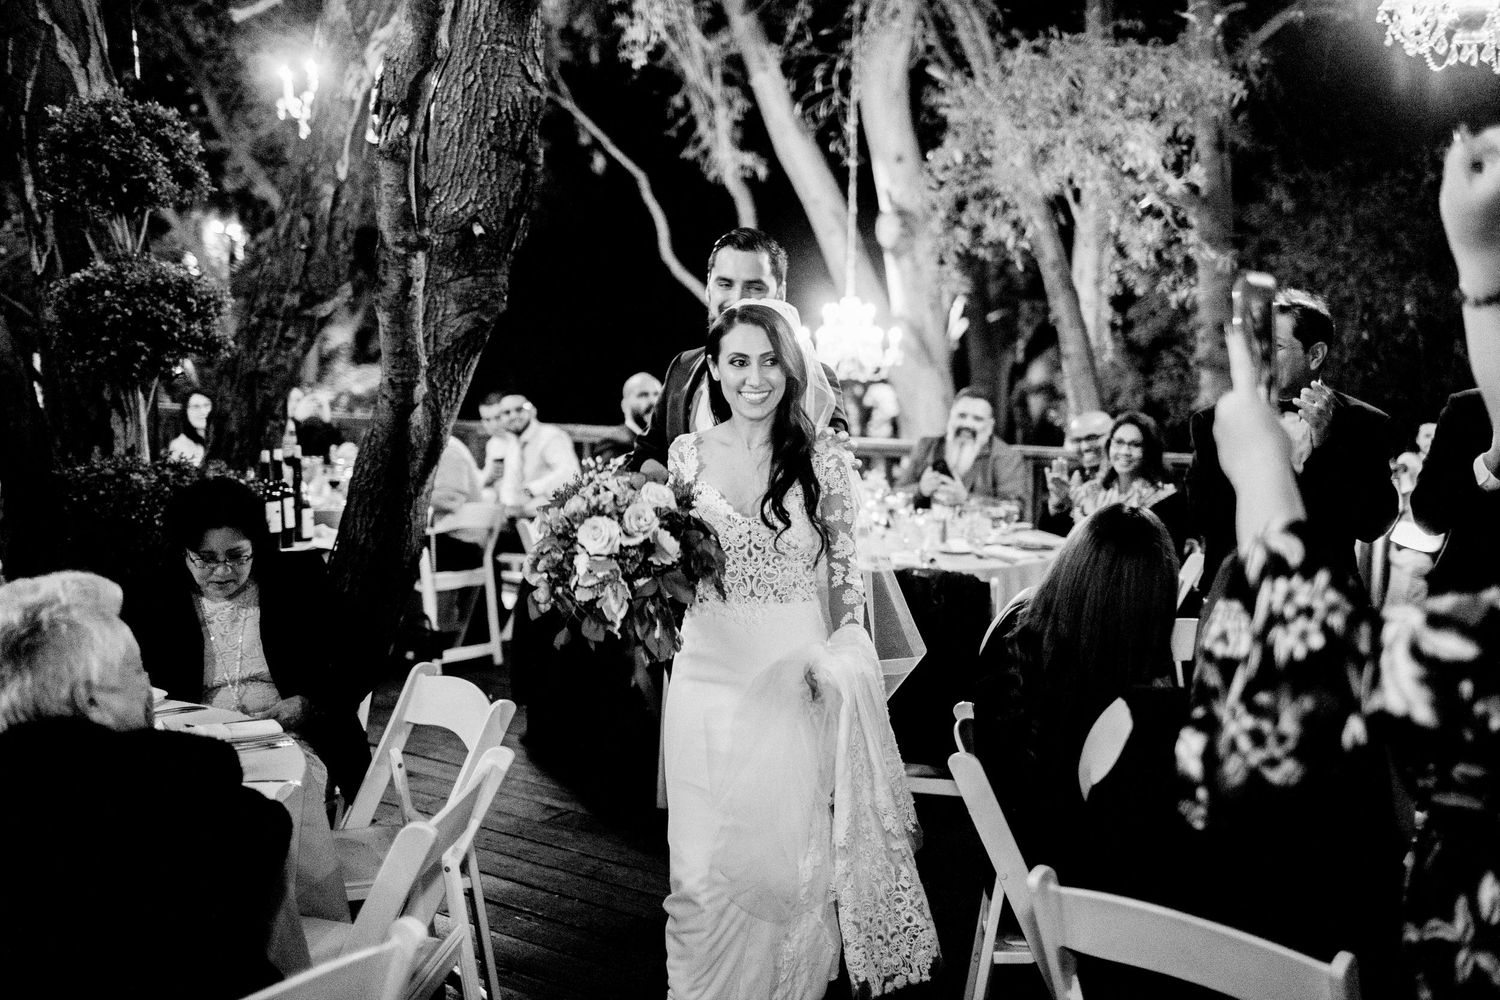 grand entrance bride and groom birchwood room calamigos ranch